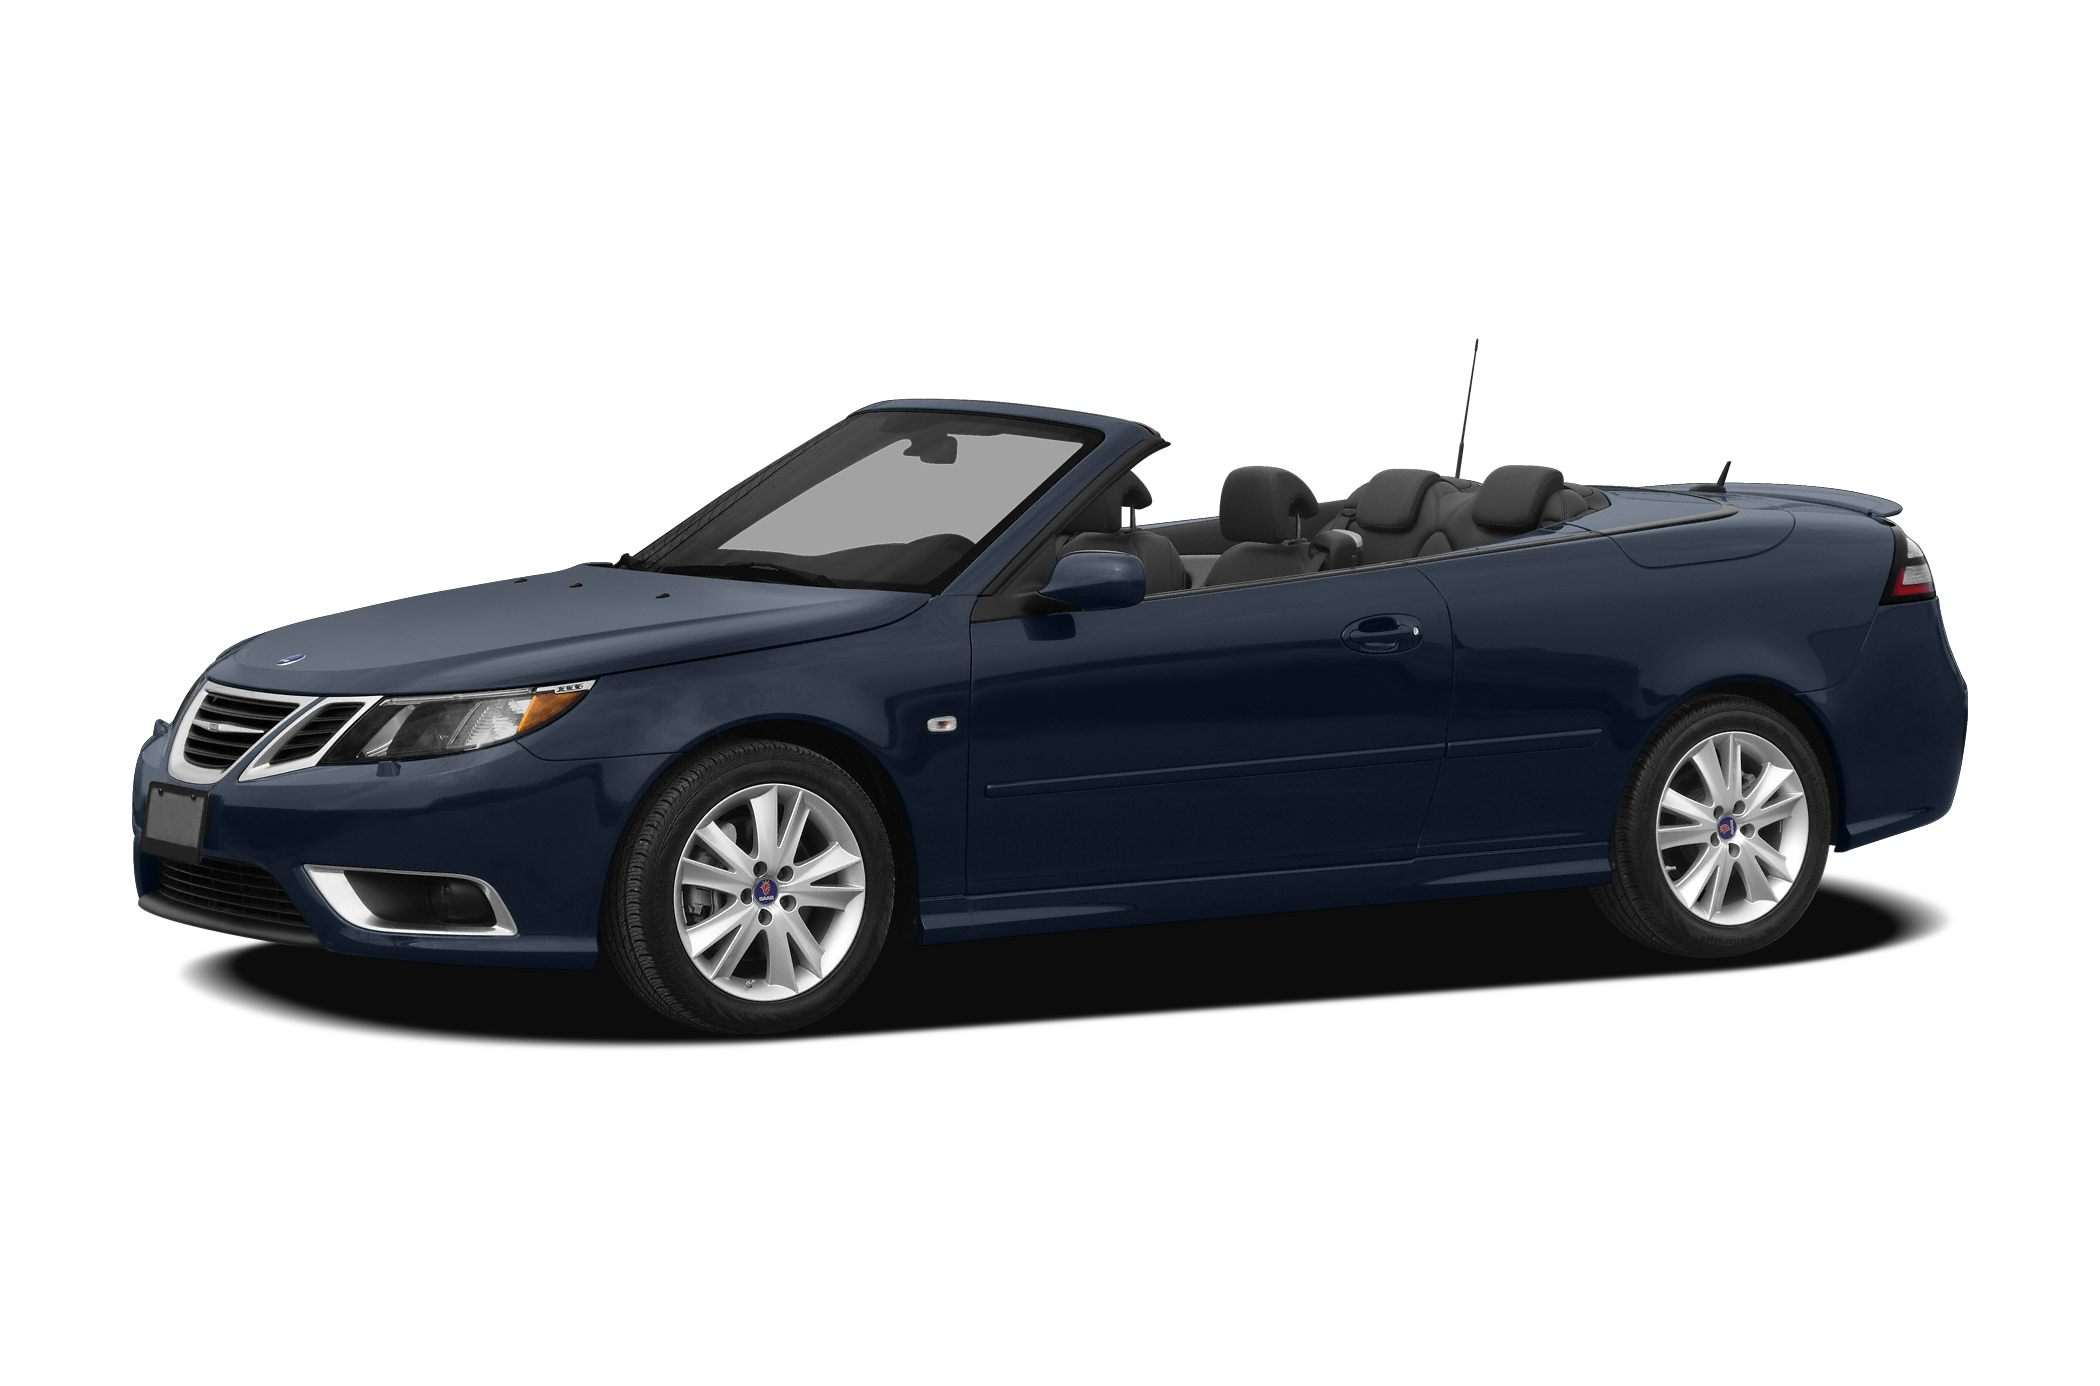 2009 Saab 9-3 Aero Sedan for sale in Northborough for $13,500 with 88,532 miles